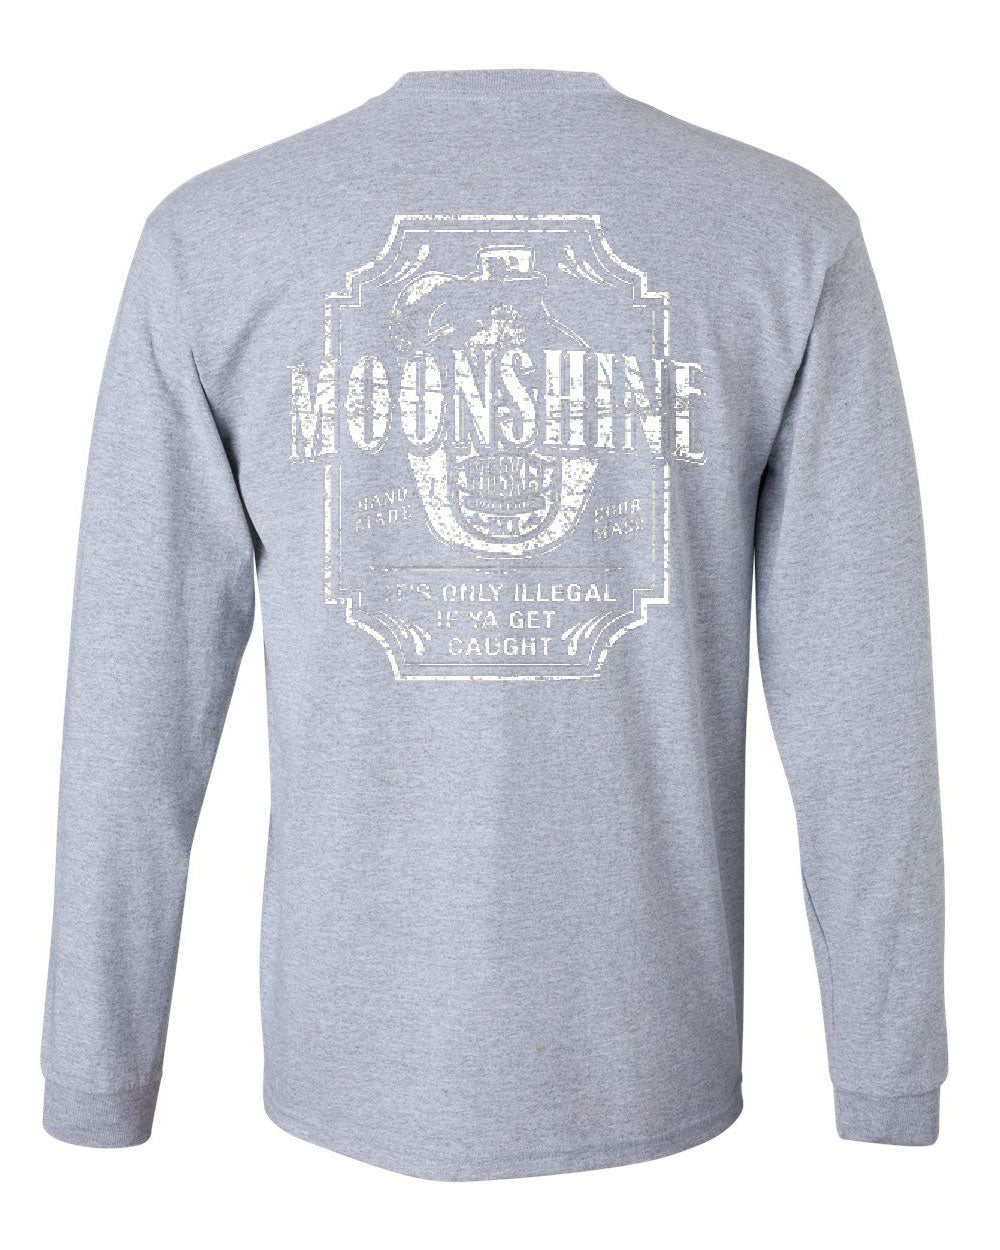 Moonshine tennessee whiskey long sleeve t shirt smoky for Mountain long sleeve t shirts